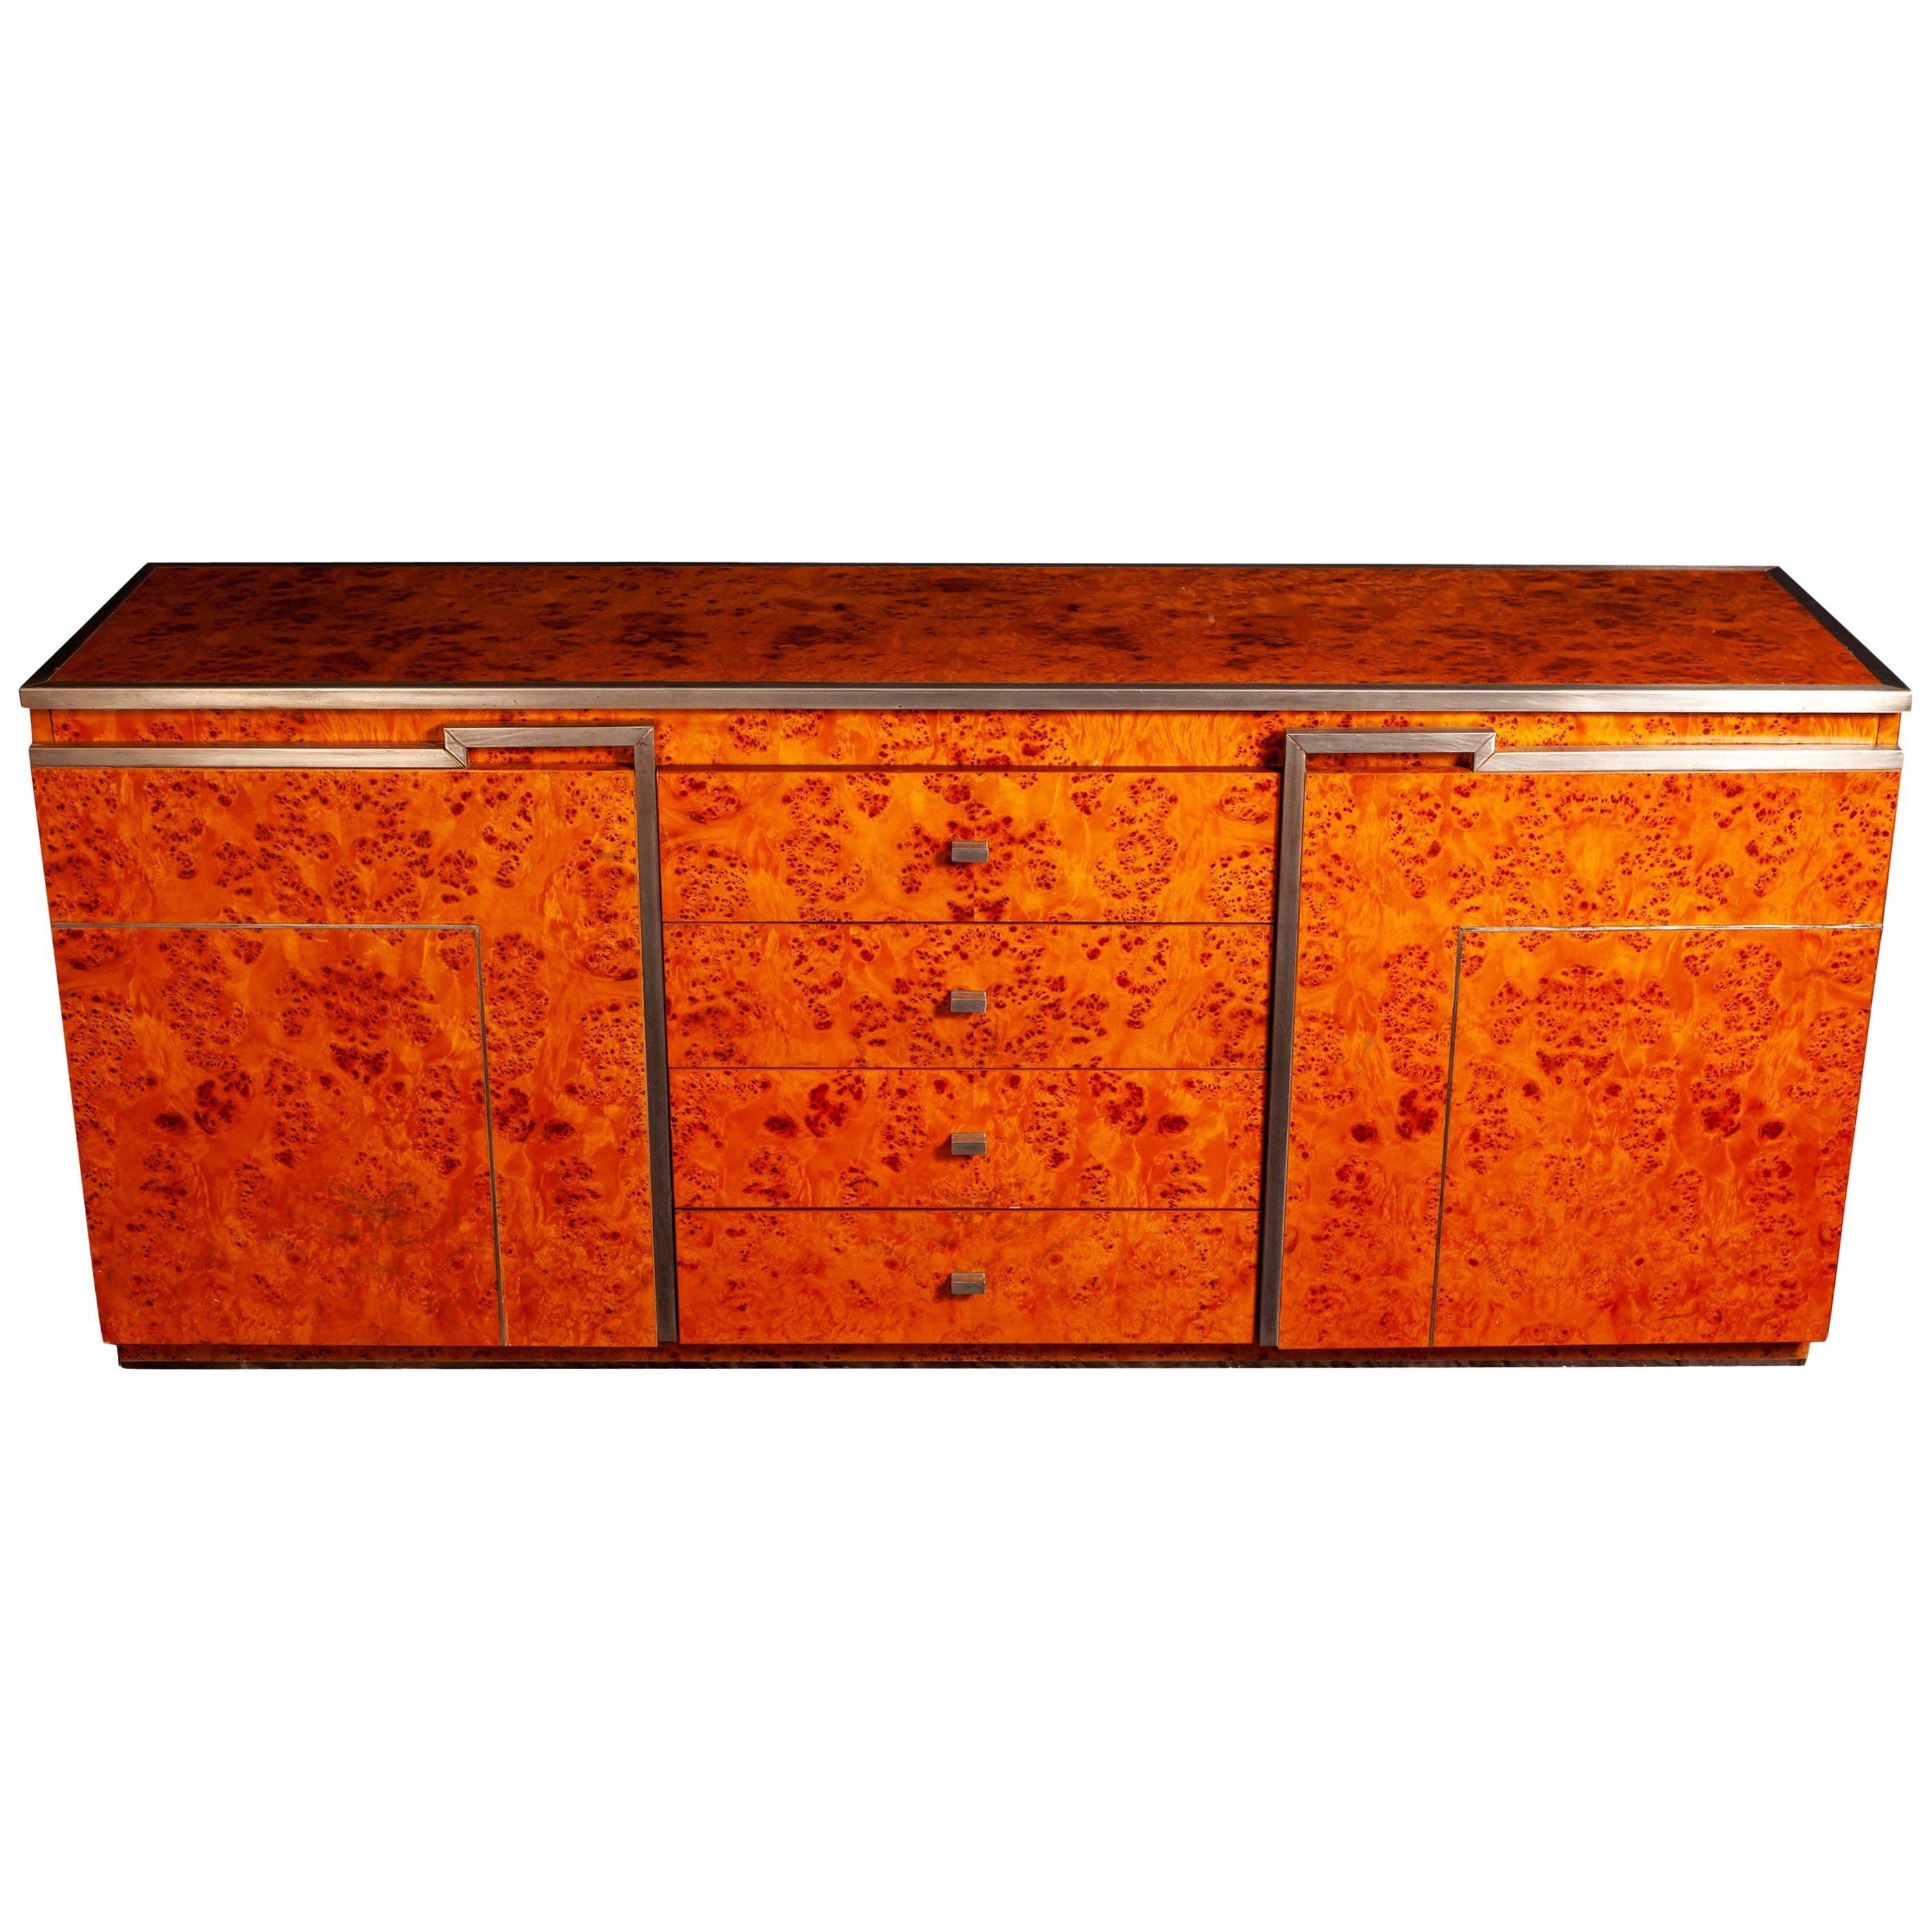 Chrome and Burl Wood Credenza in the Style of Willy Rizzo, Italy, 1970